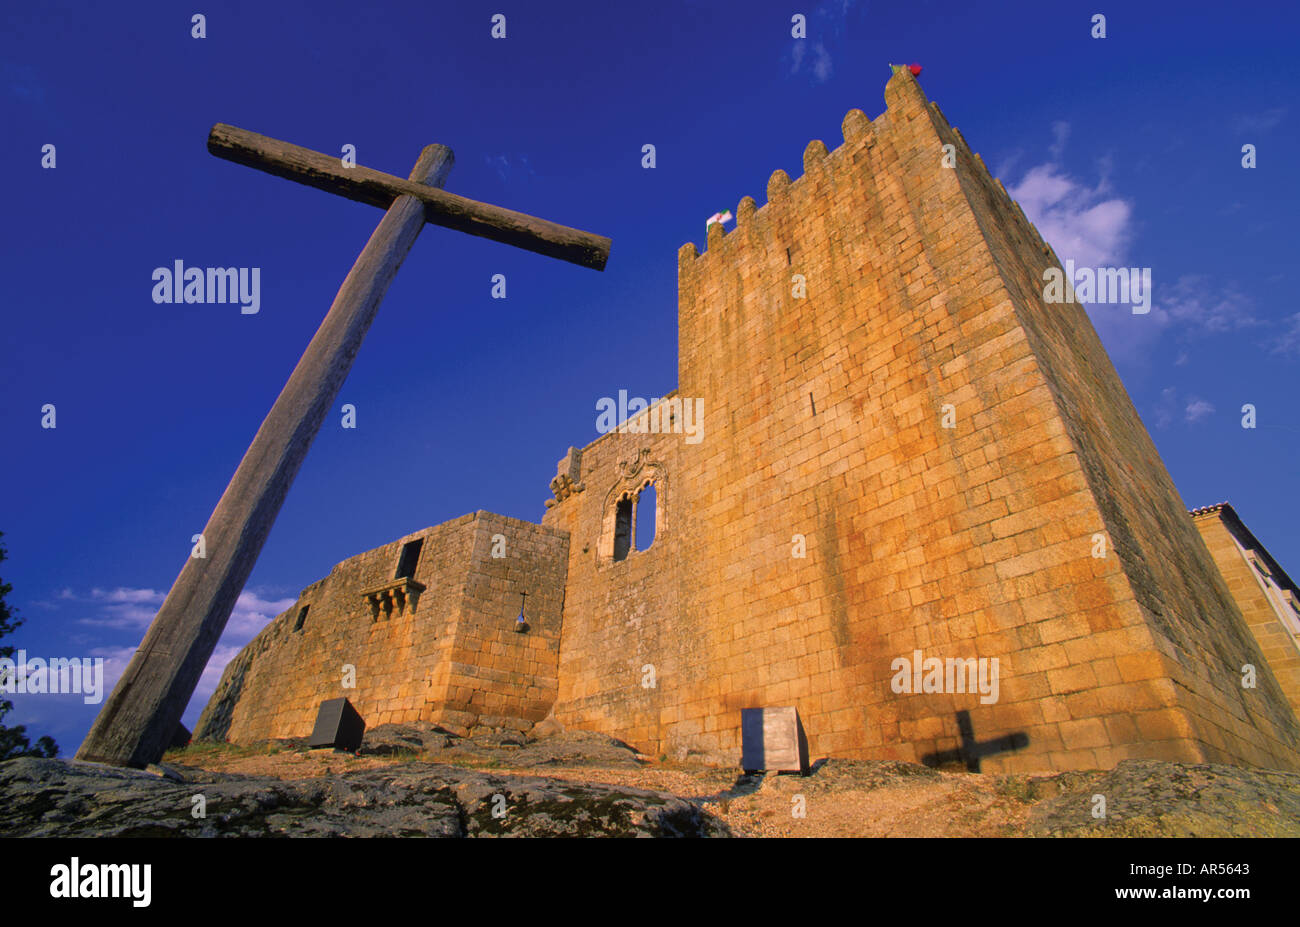 Portugal, Belmonte: Cross and castle in the native village of Pedro Alvares Cabral, discoverer of Brazil - Stock Image